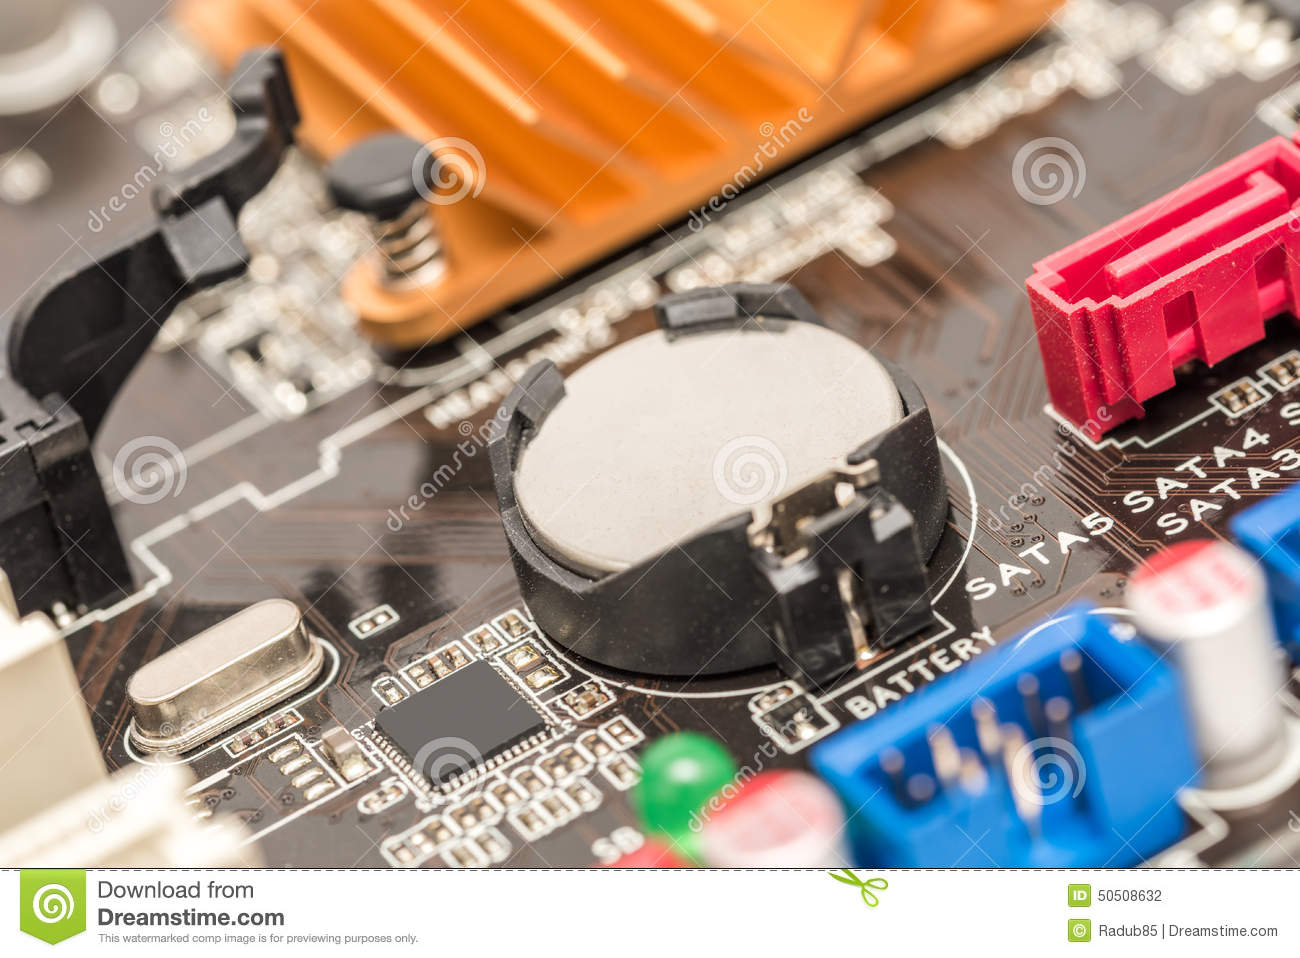 10237 Post Your System Diagram in addition Viewthread 163 14961 as well How To Match Subwoofers And  lifiers likewise Pla  Audio likewise Stock Photo Lithium Button Cell Battery  puter Motherboard Image50508632. on install audio capacitor